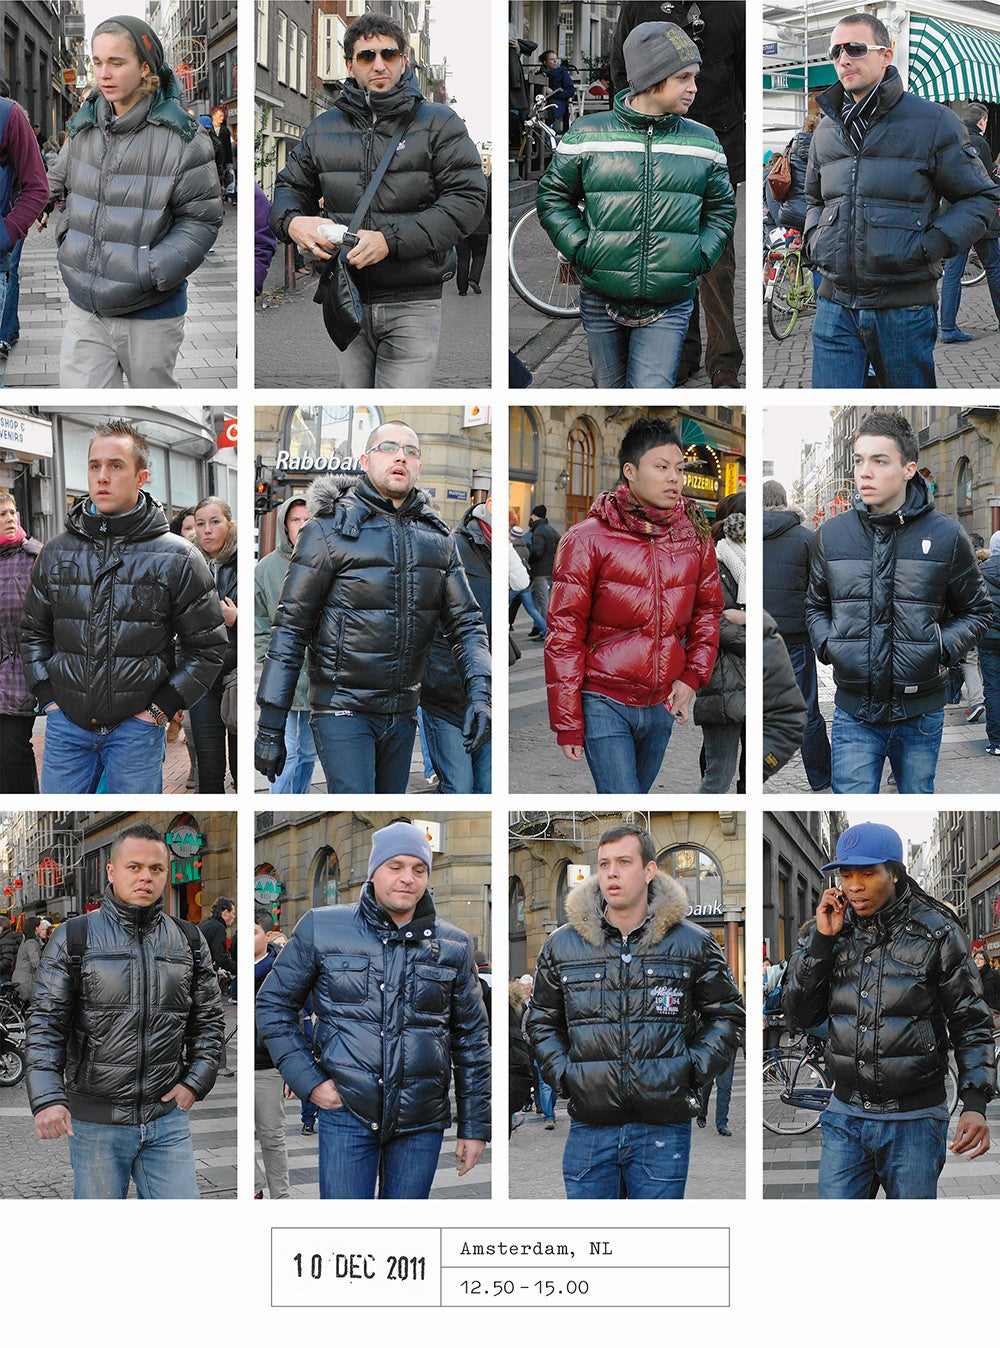 These pictures prove that there's nothing original in the way we dress